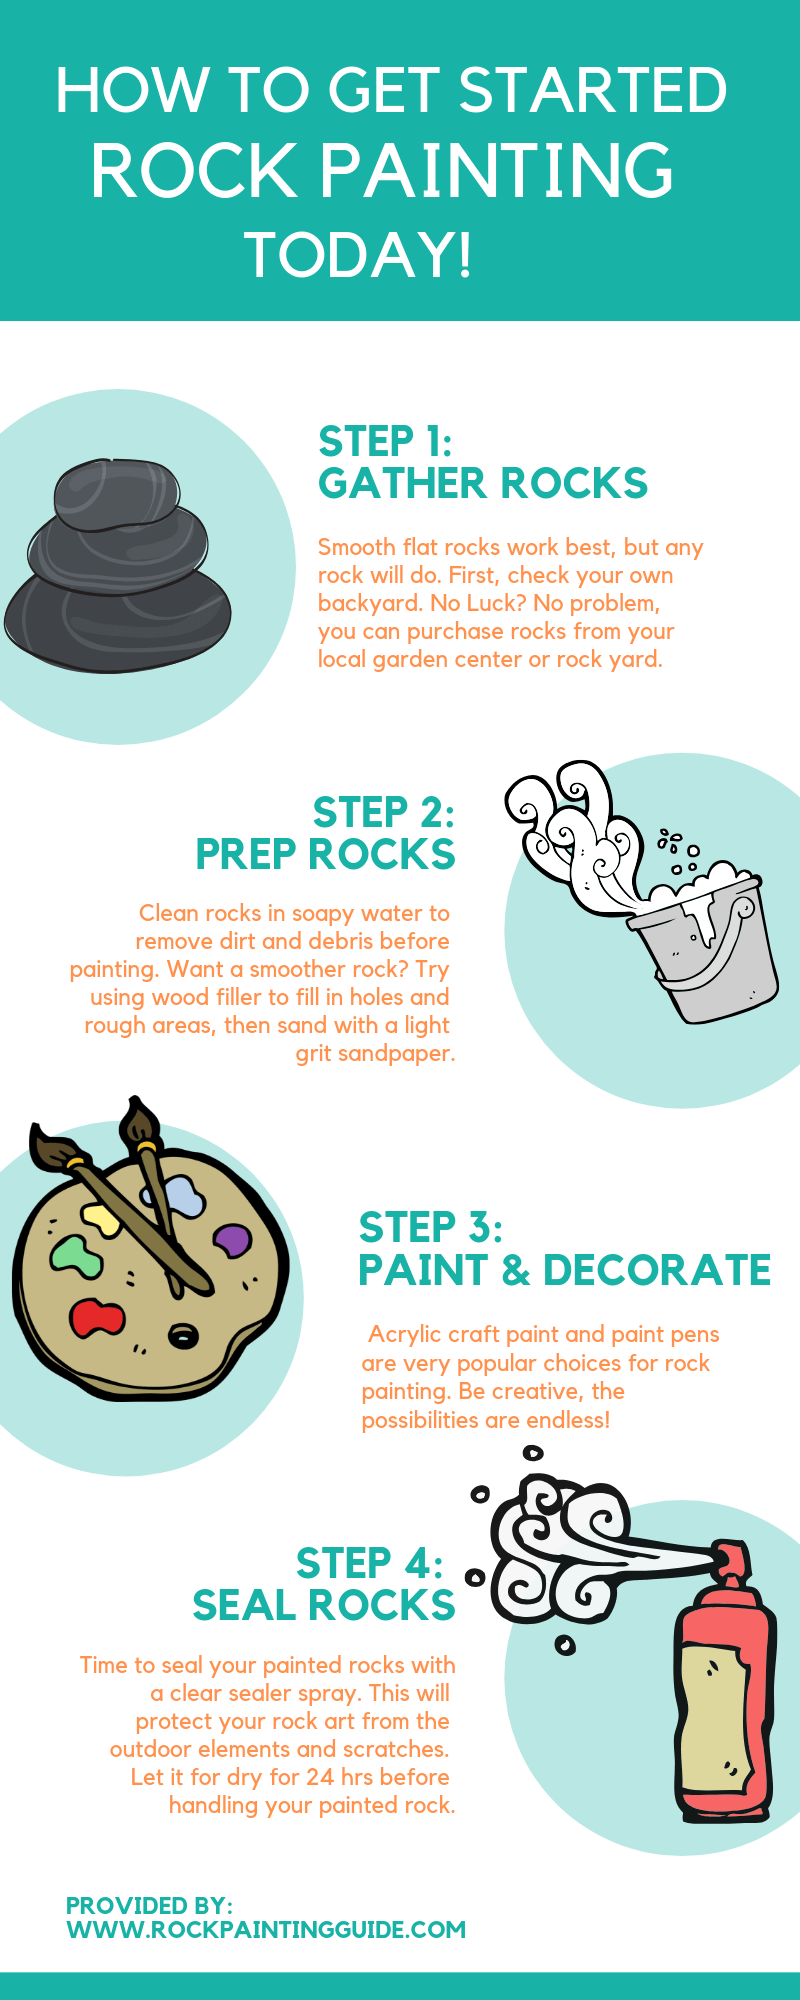 How to Start Rock Painting Today